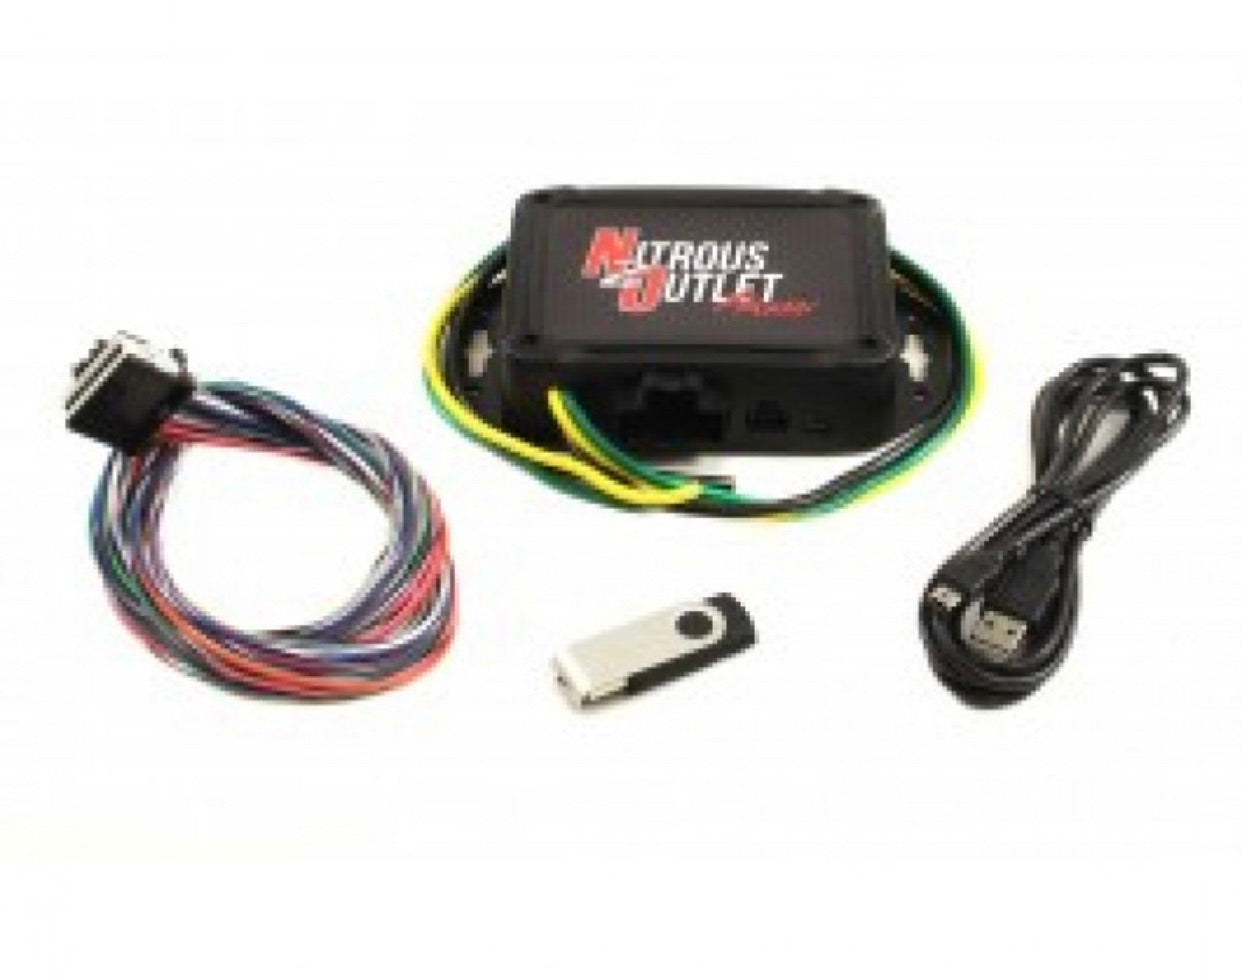 NITROUS OUTLET PROMAX DUAL CHANNEL PROGRESSIVE CONTROLLER + SCREEN/SENSORS